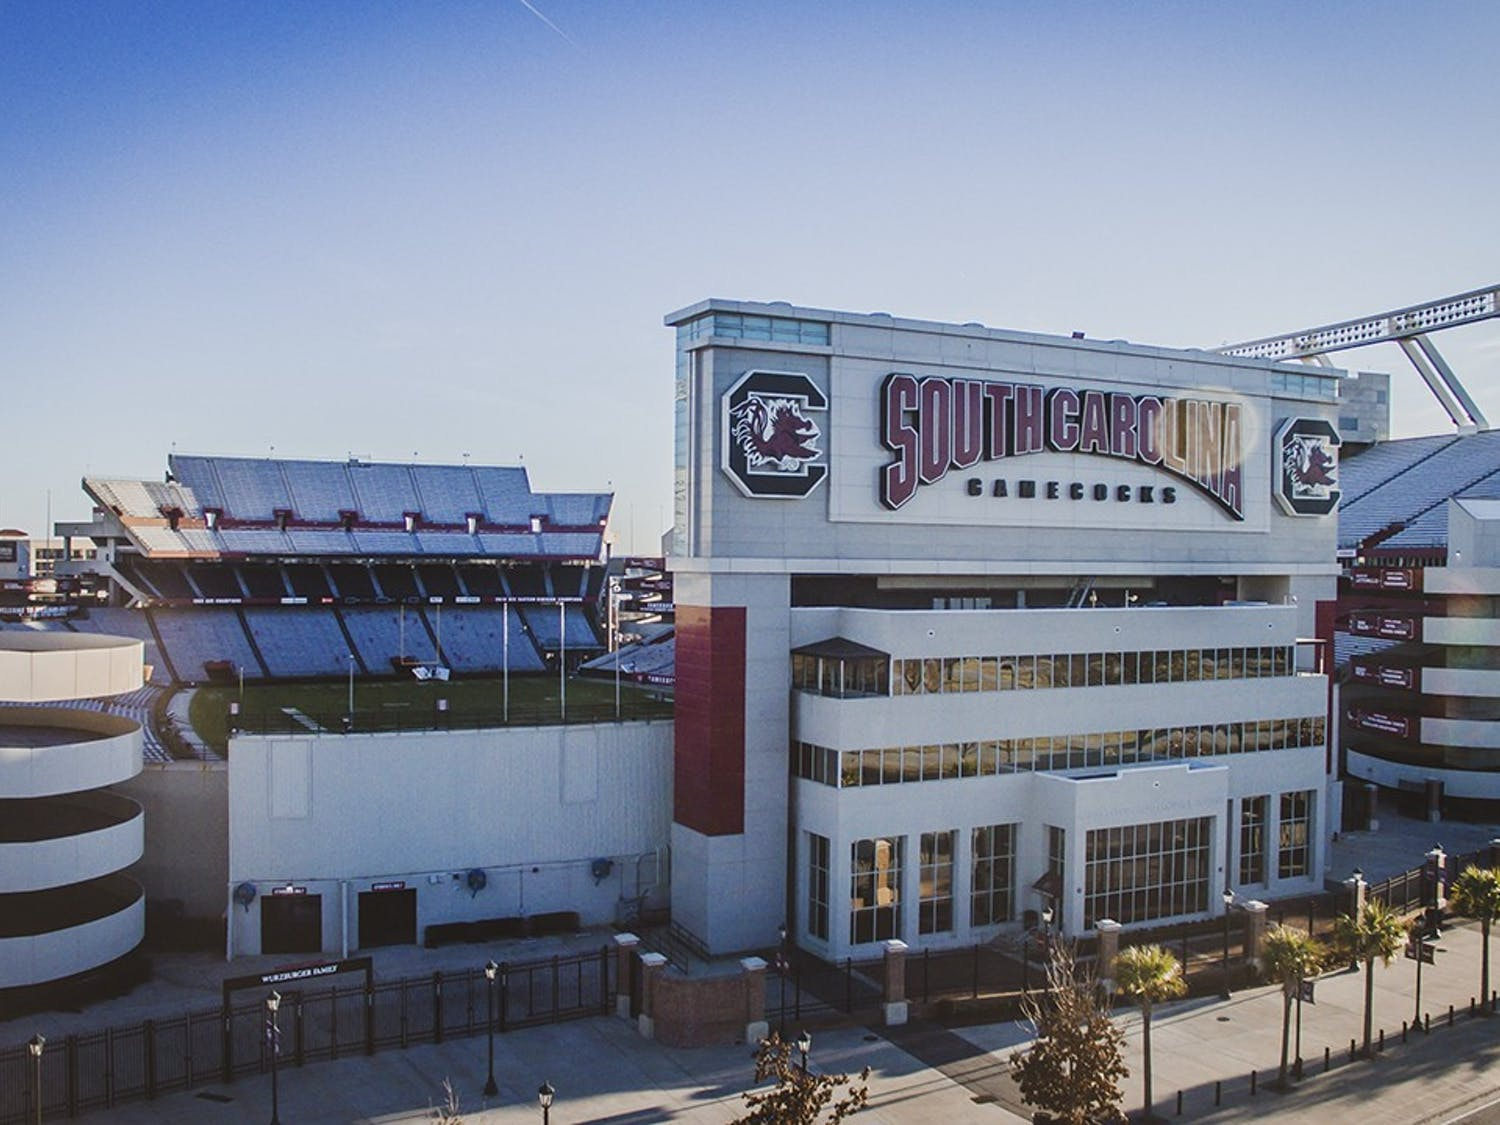 Williams-Brice Stadium sits only minutes from the University of South Carolina campus.